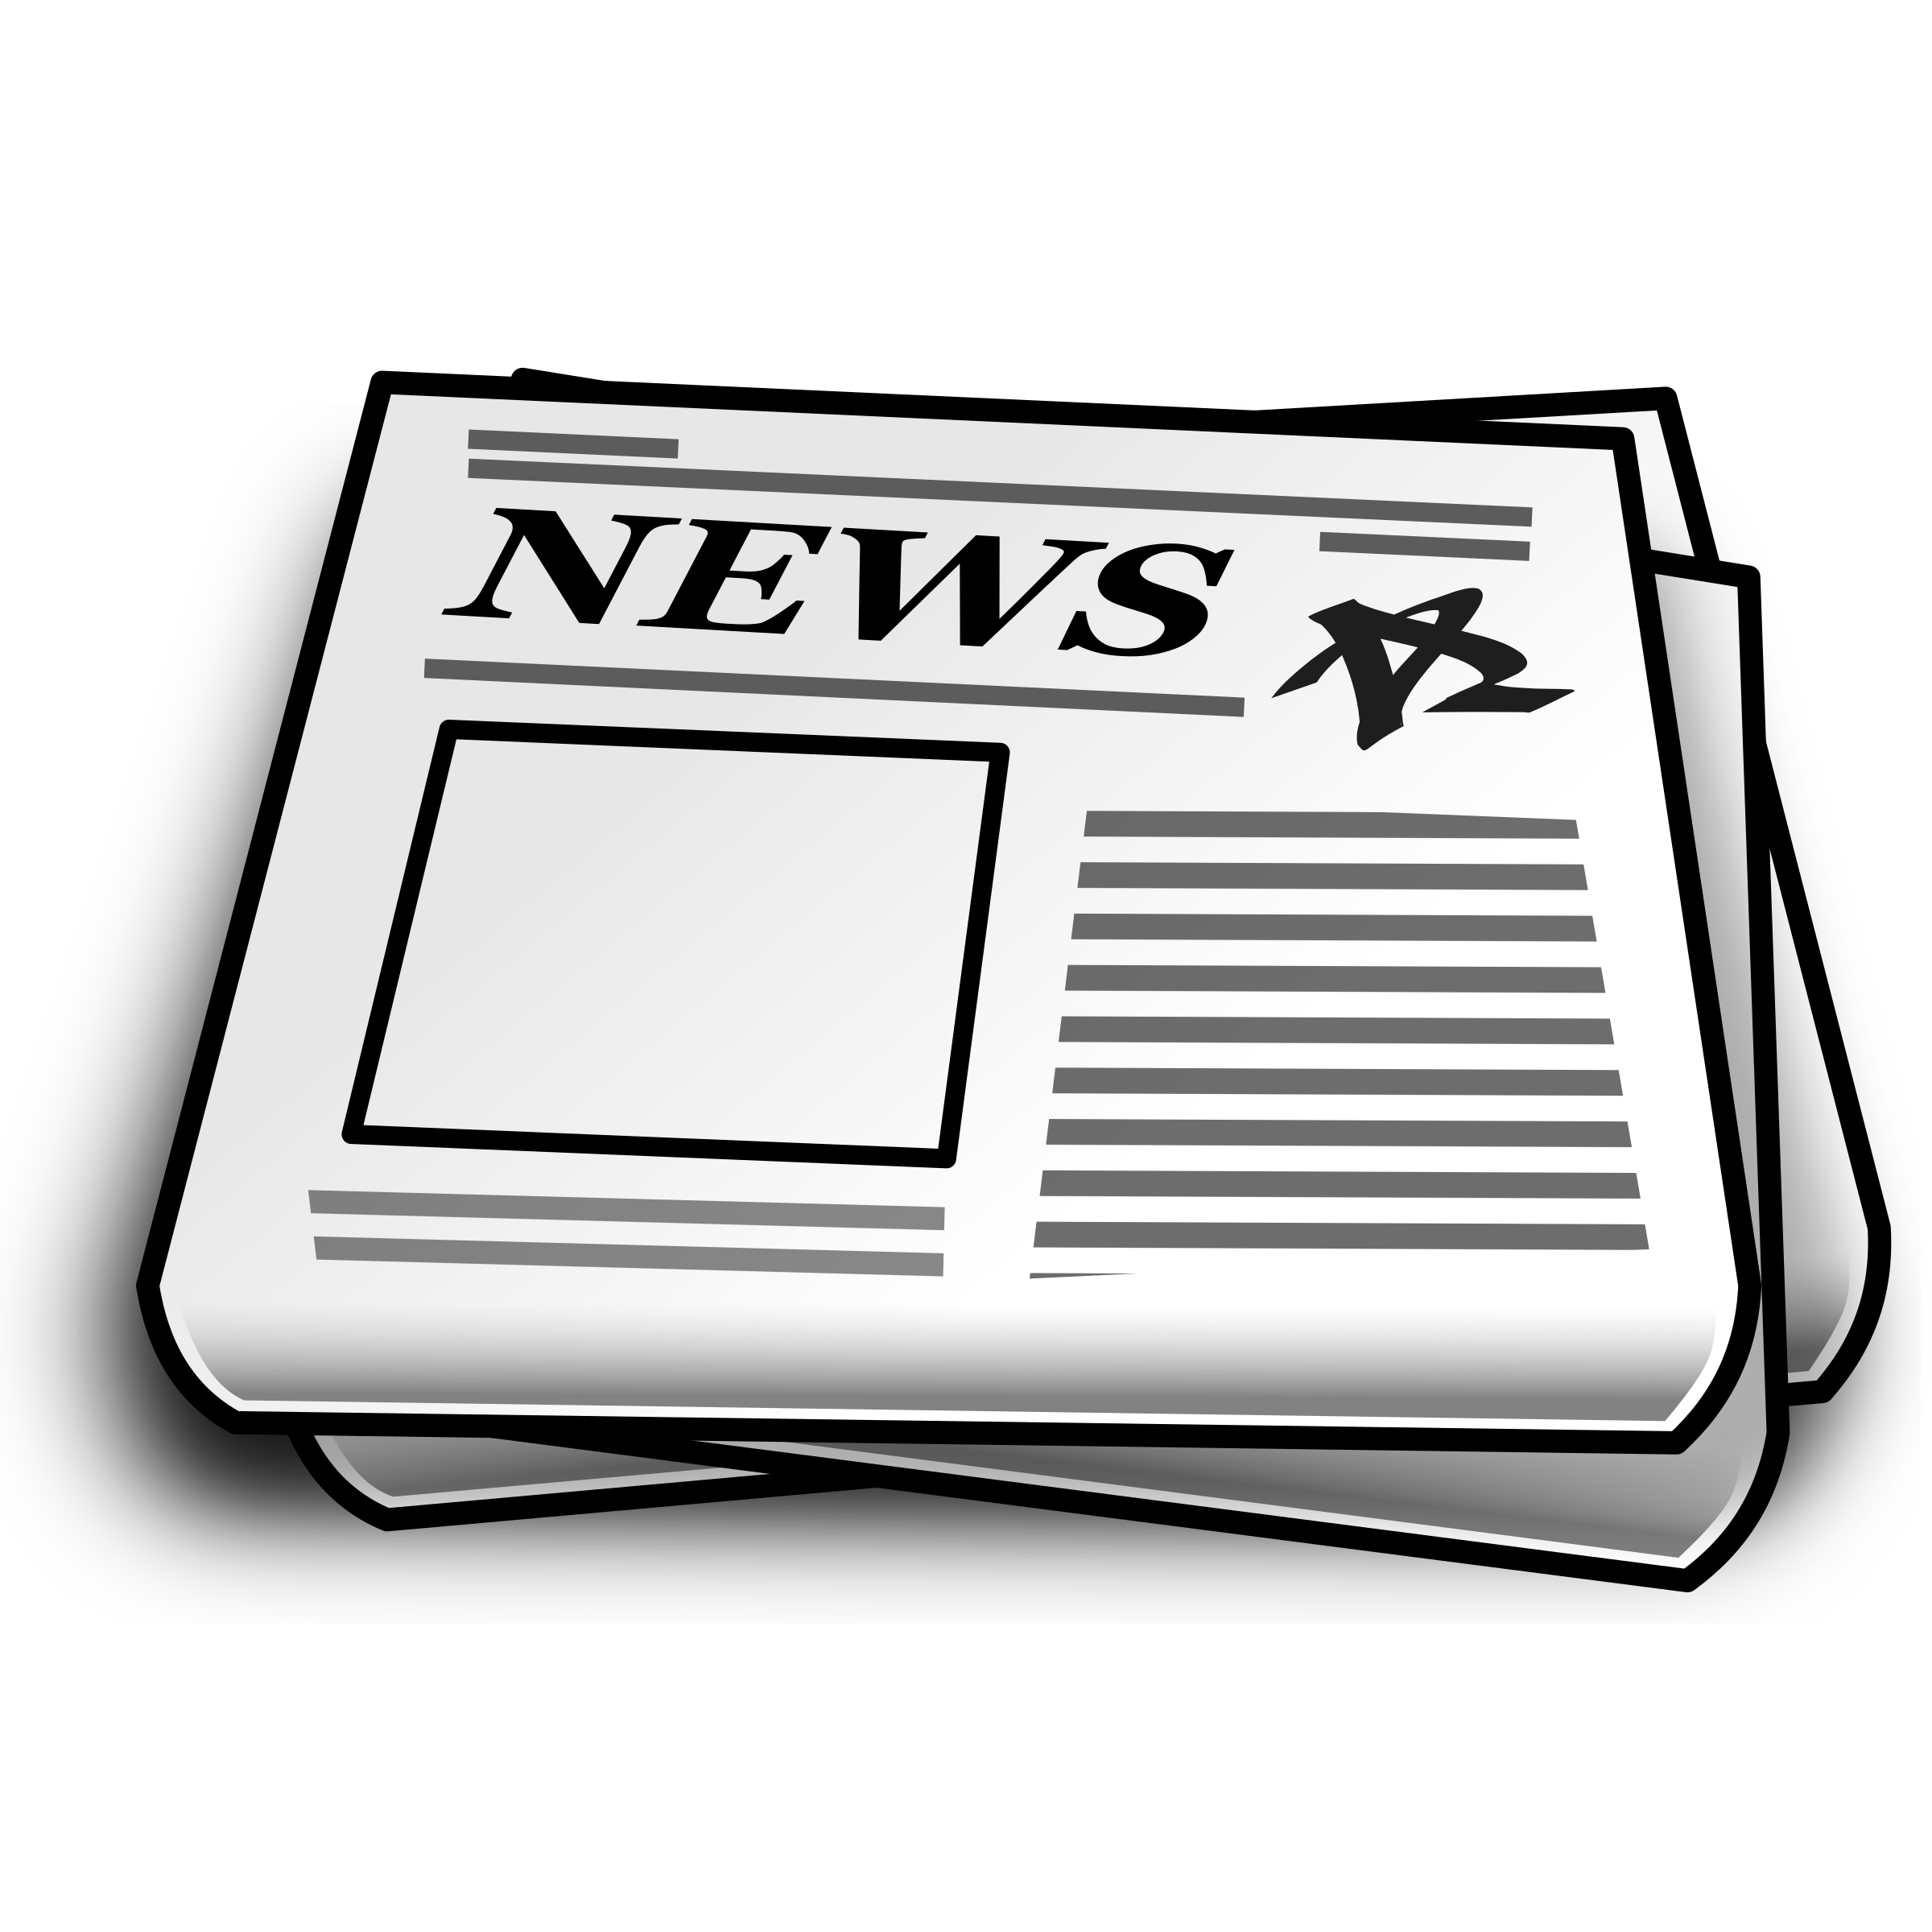 NEWSLETTERS - Tell your folks what's going on ... with our help. You supply the content, we put everything together in a clear yet stylish format. Electronic and print versions available.